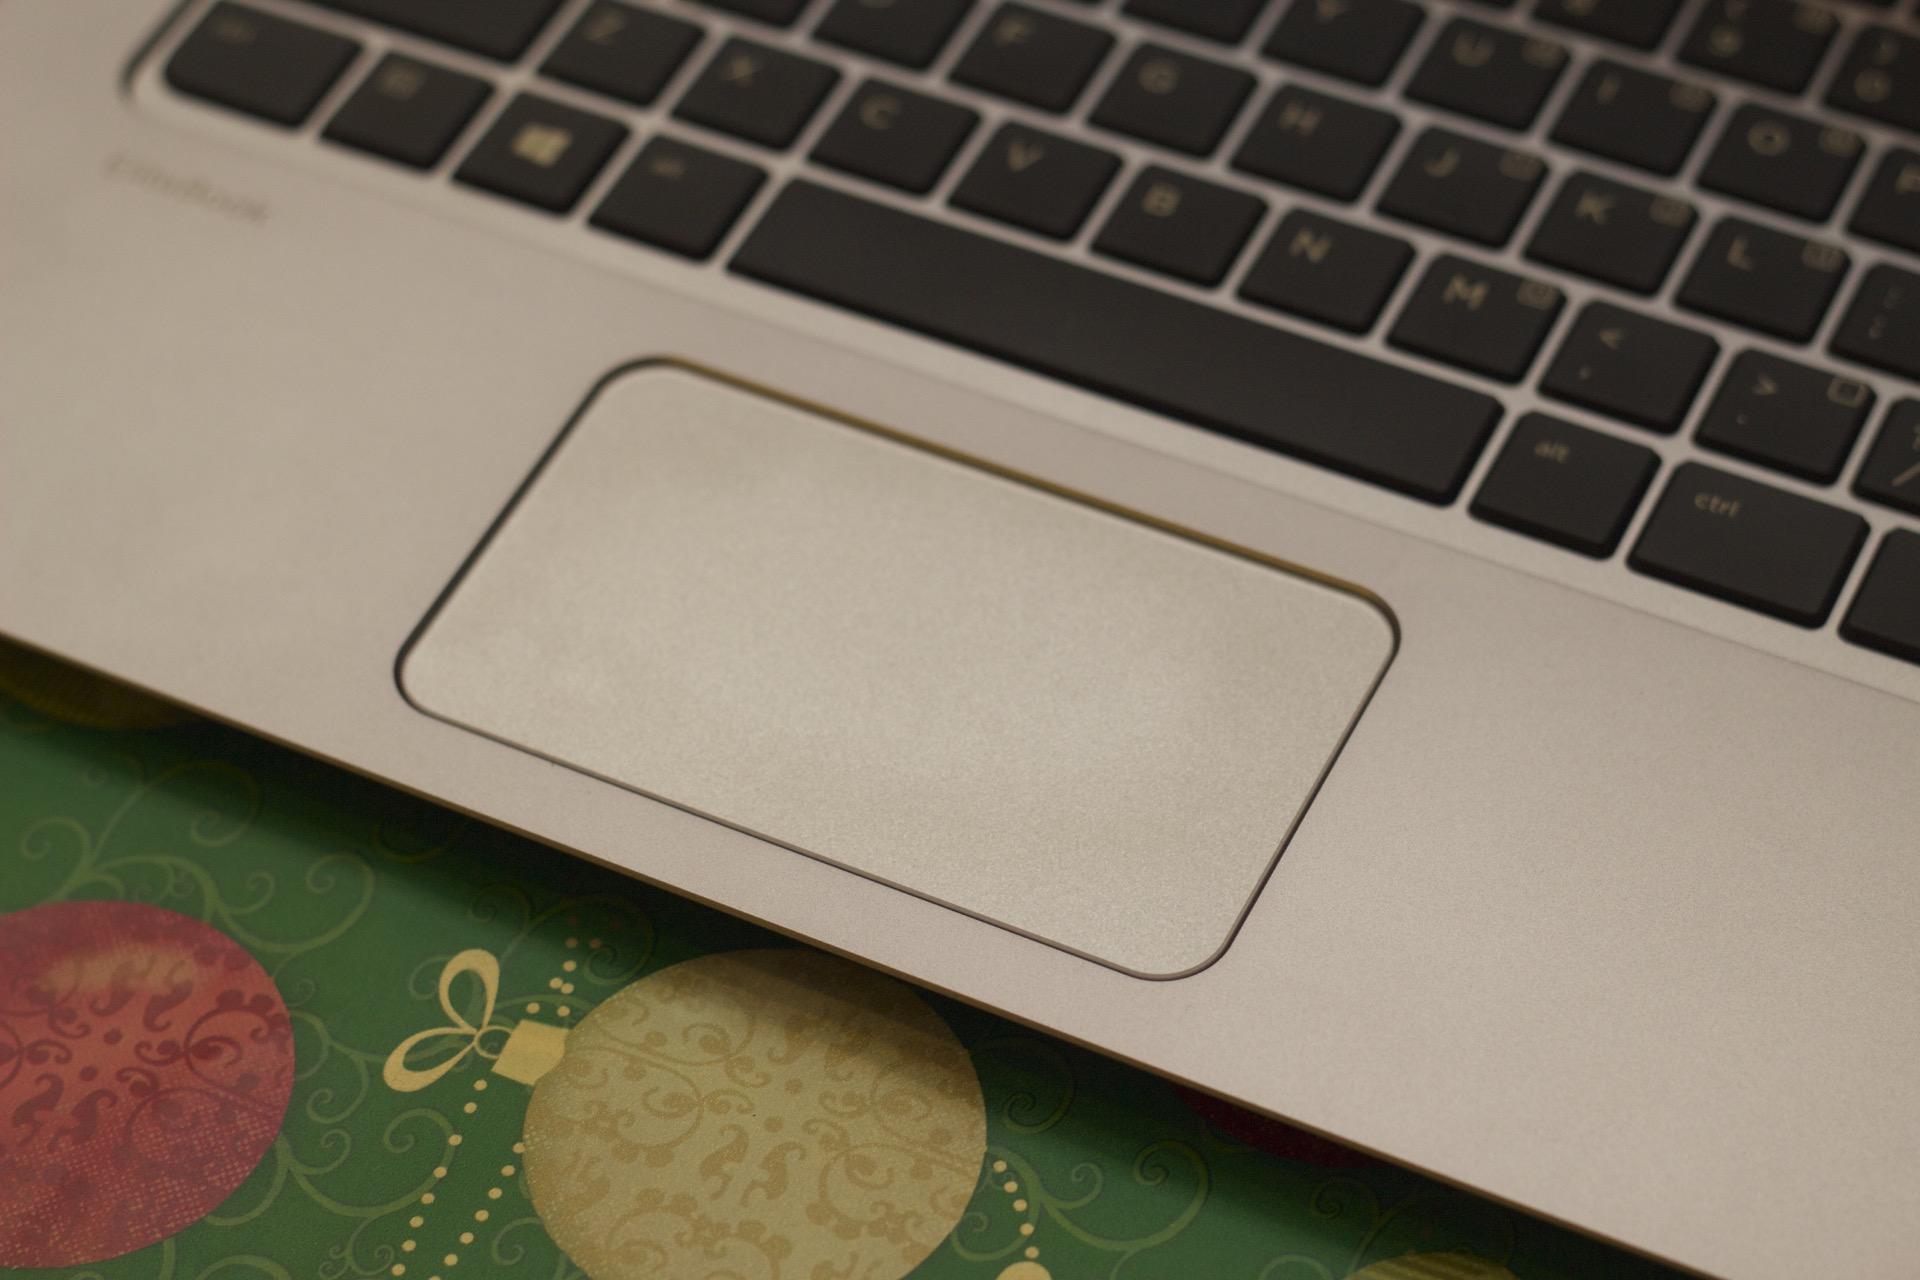 The clickless trackpad is fairly accurate but strange to use.